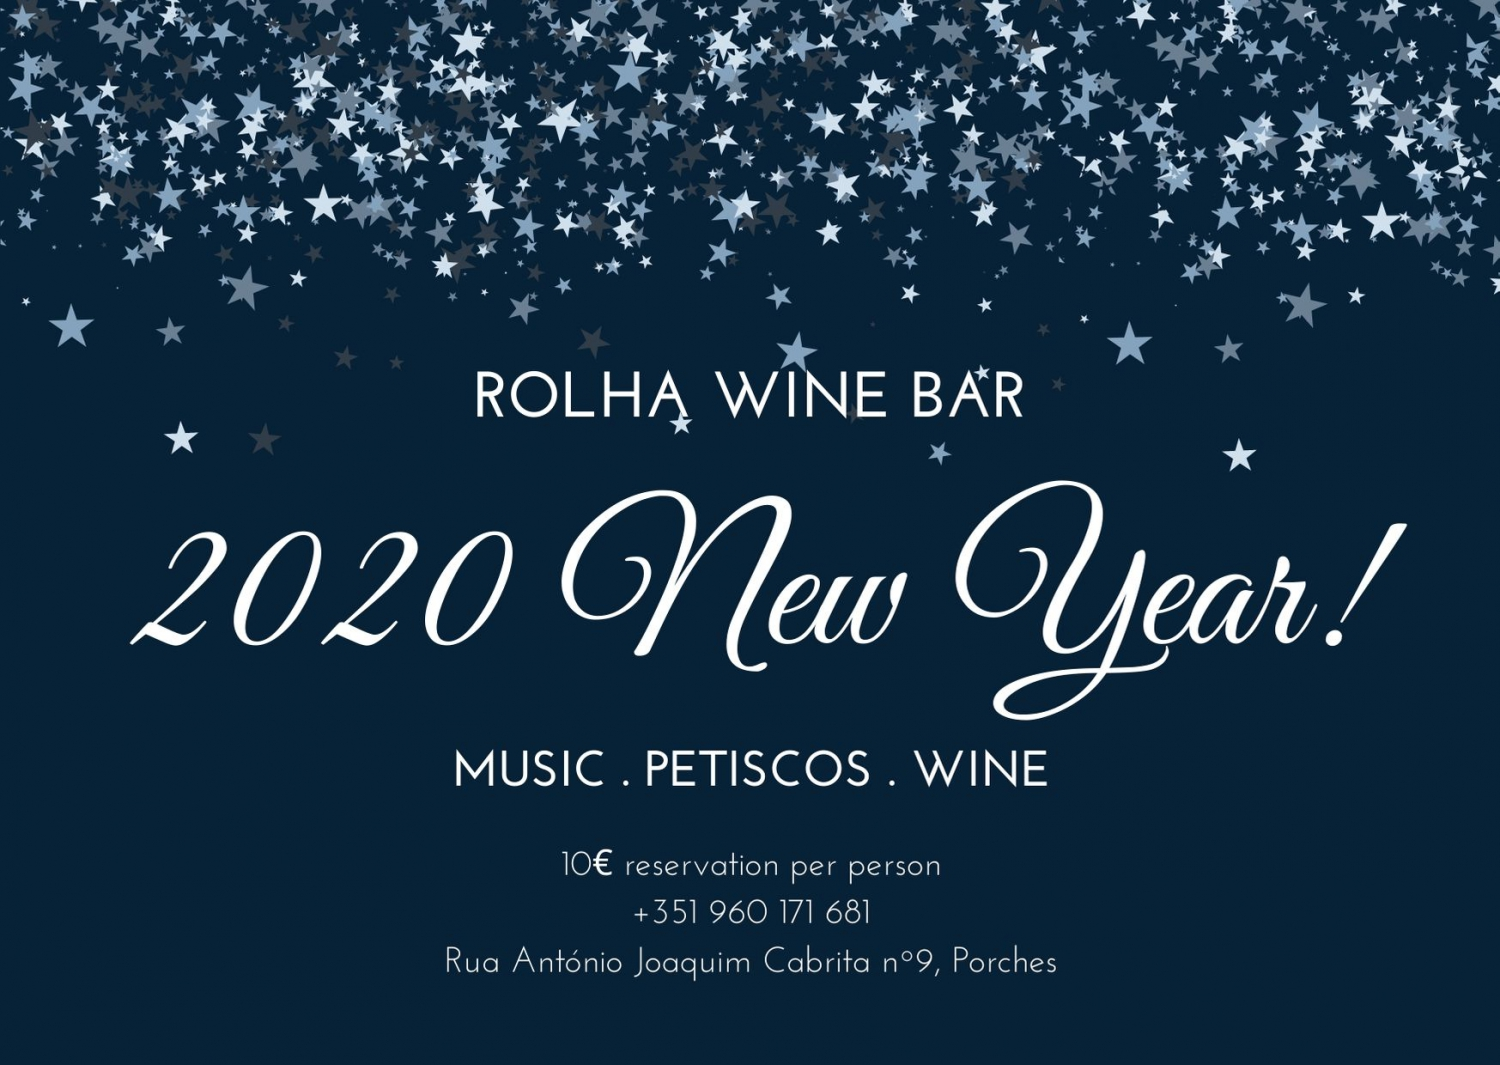 New Year's Eve at Rolha Wine Bar